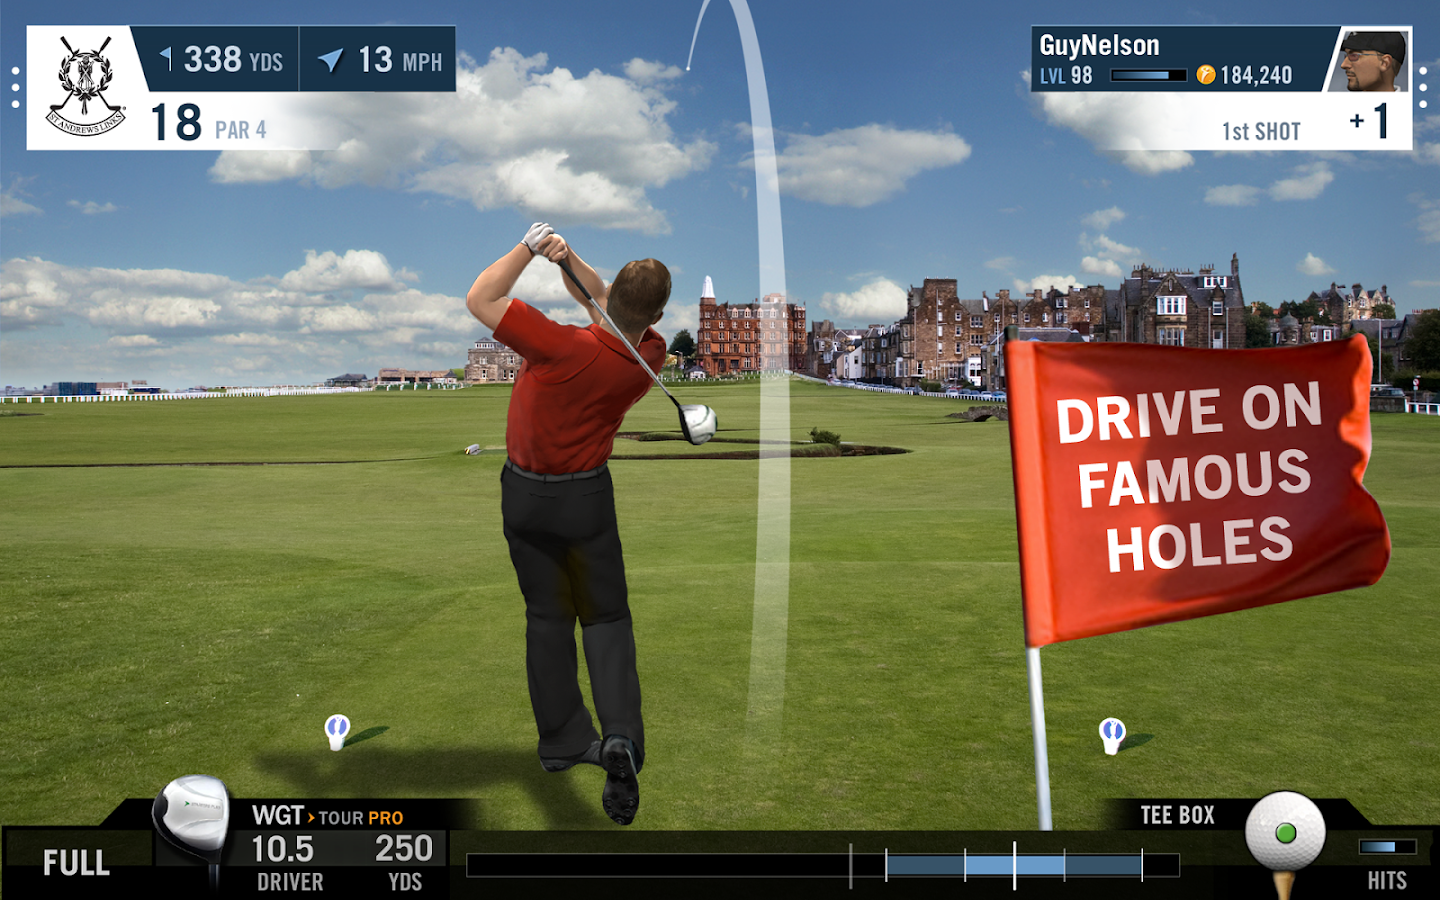 how to play wgt golf on iphone